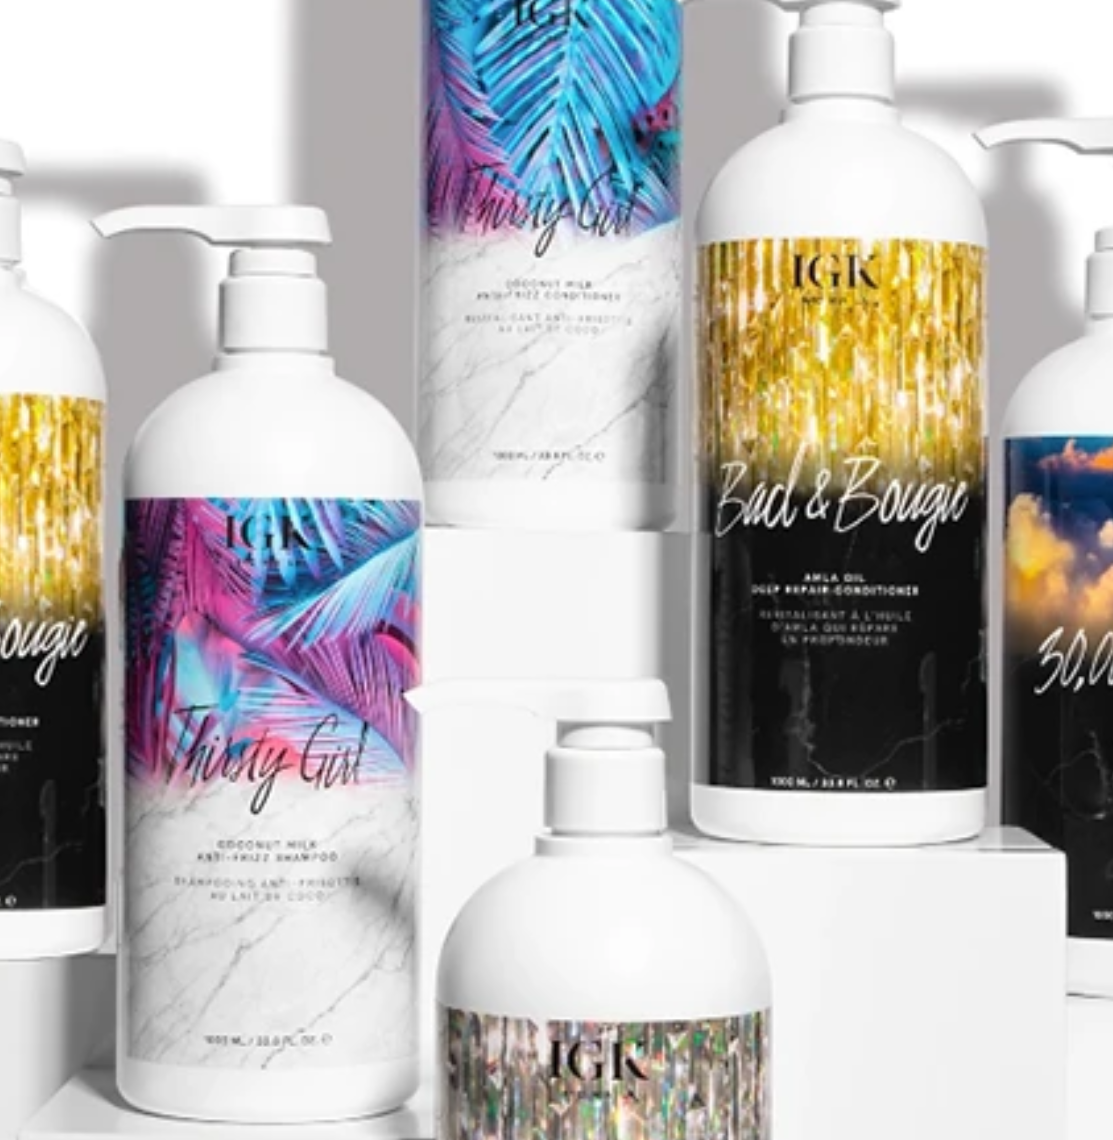 IGK Hair: Get Shampoo & Conditioner Liters For $30